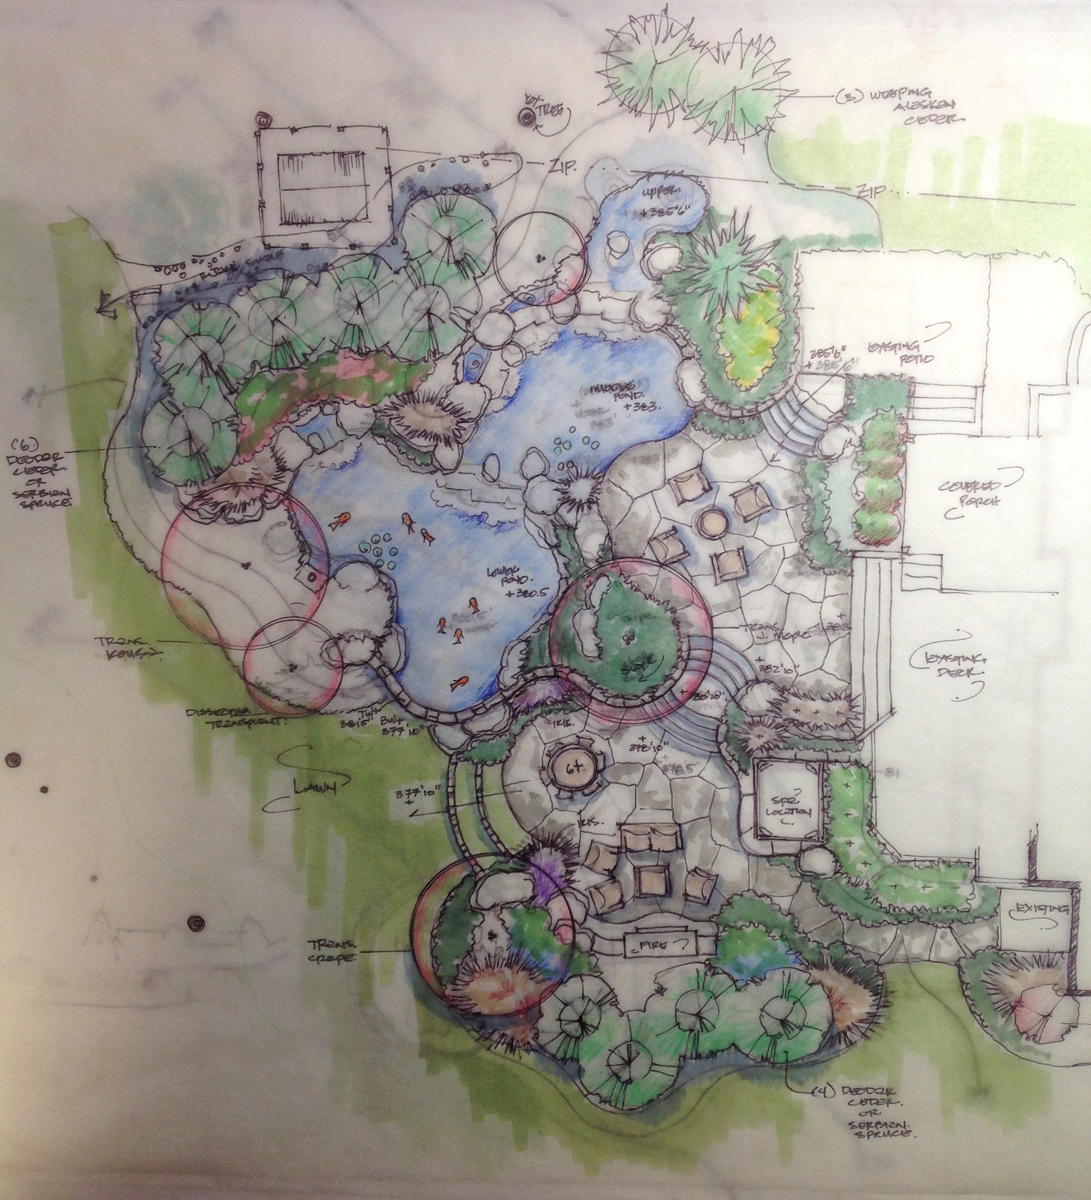 Waterfall koi pond design in vienna virginia surrounds for Site plan with landscape